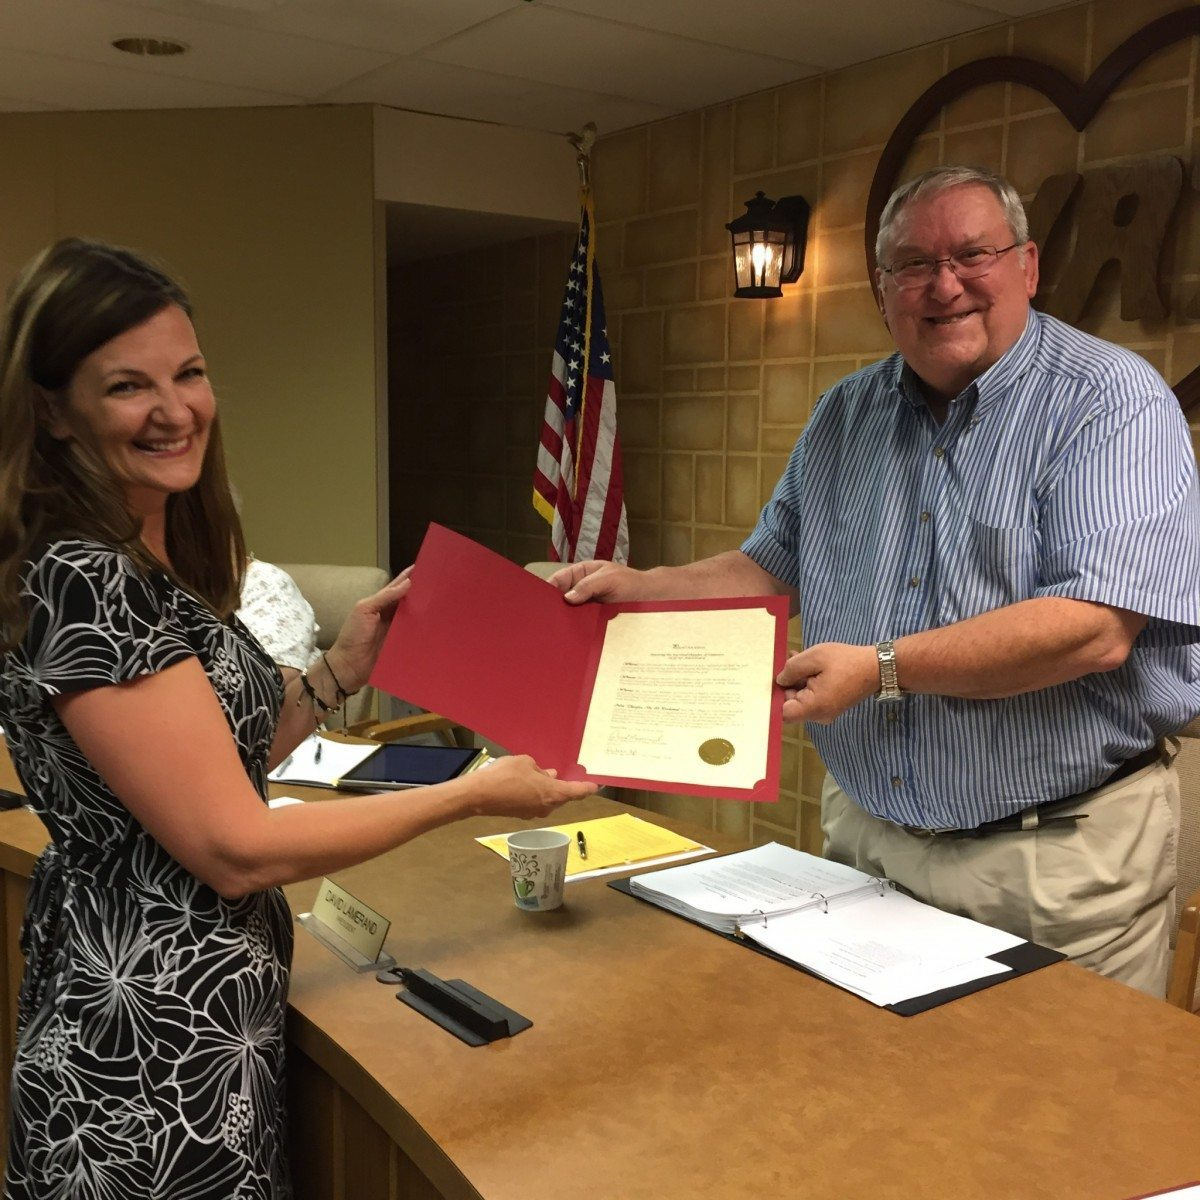 HARTLAND CHAMBER RECEIVES PROCLAMATION